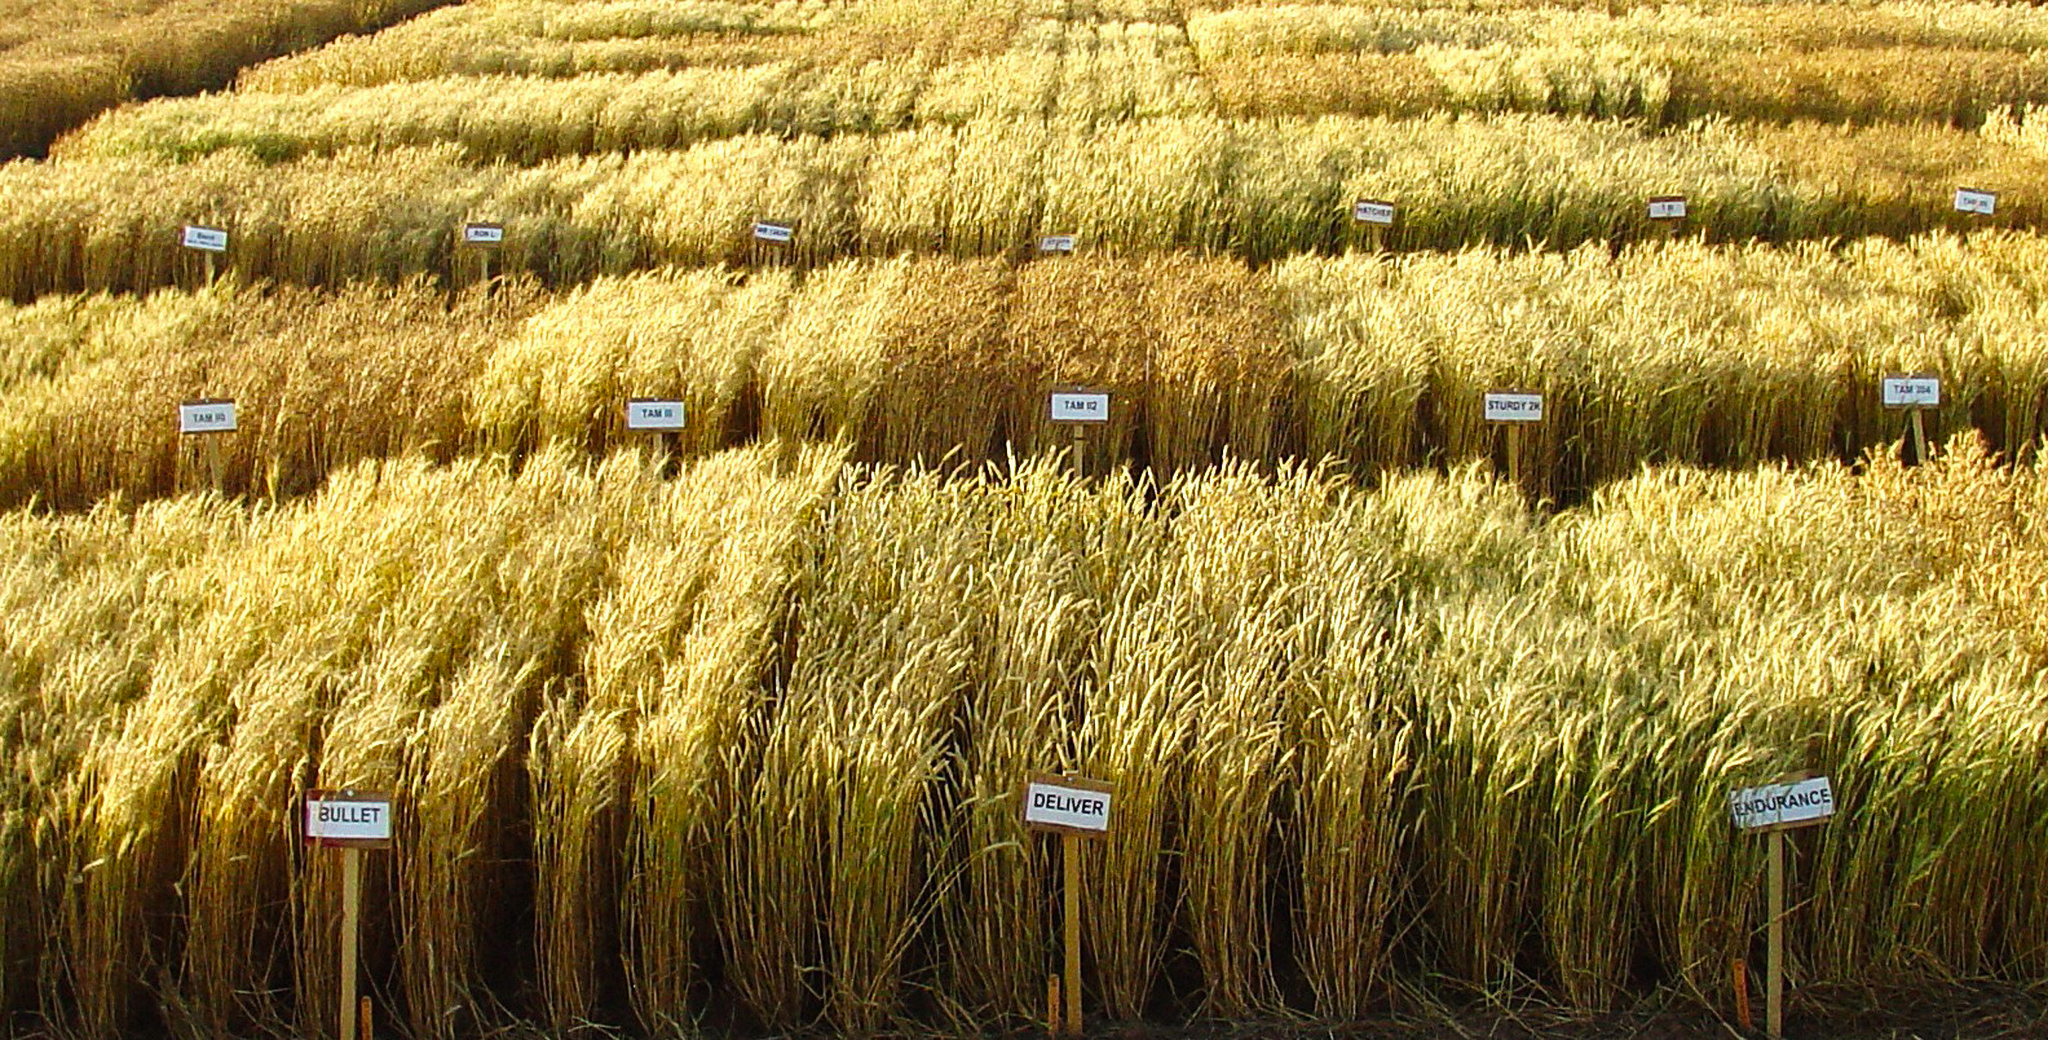 Different varieties of wheat in a field